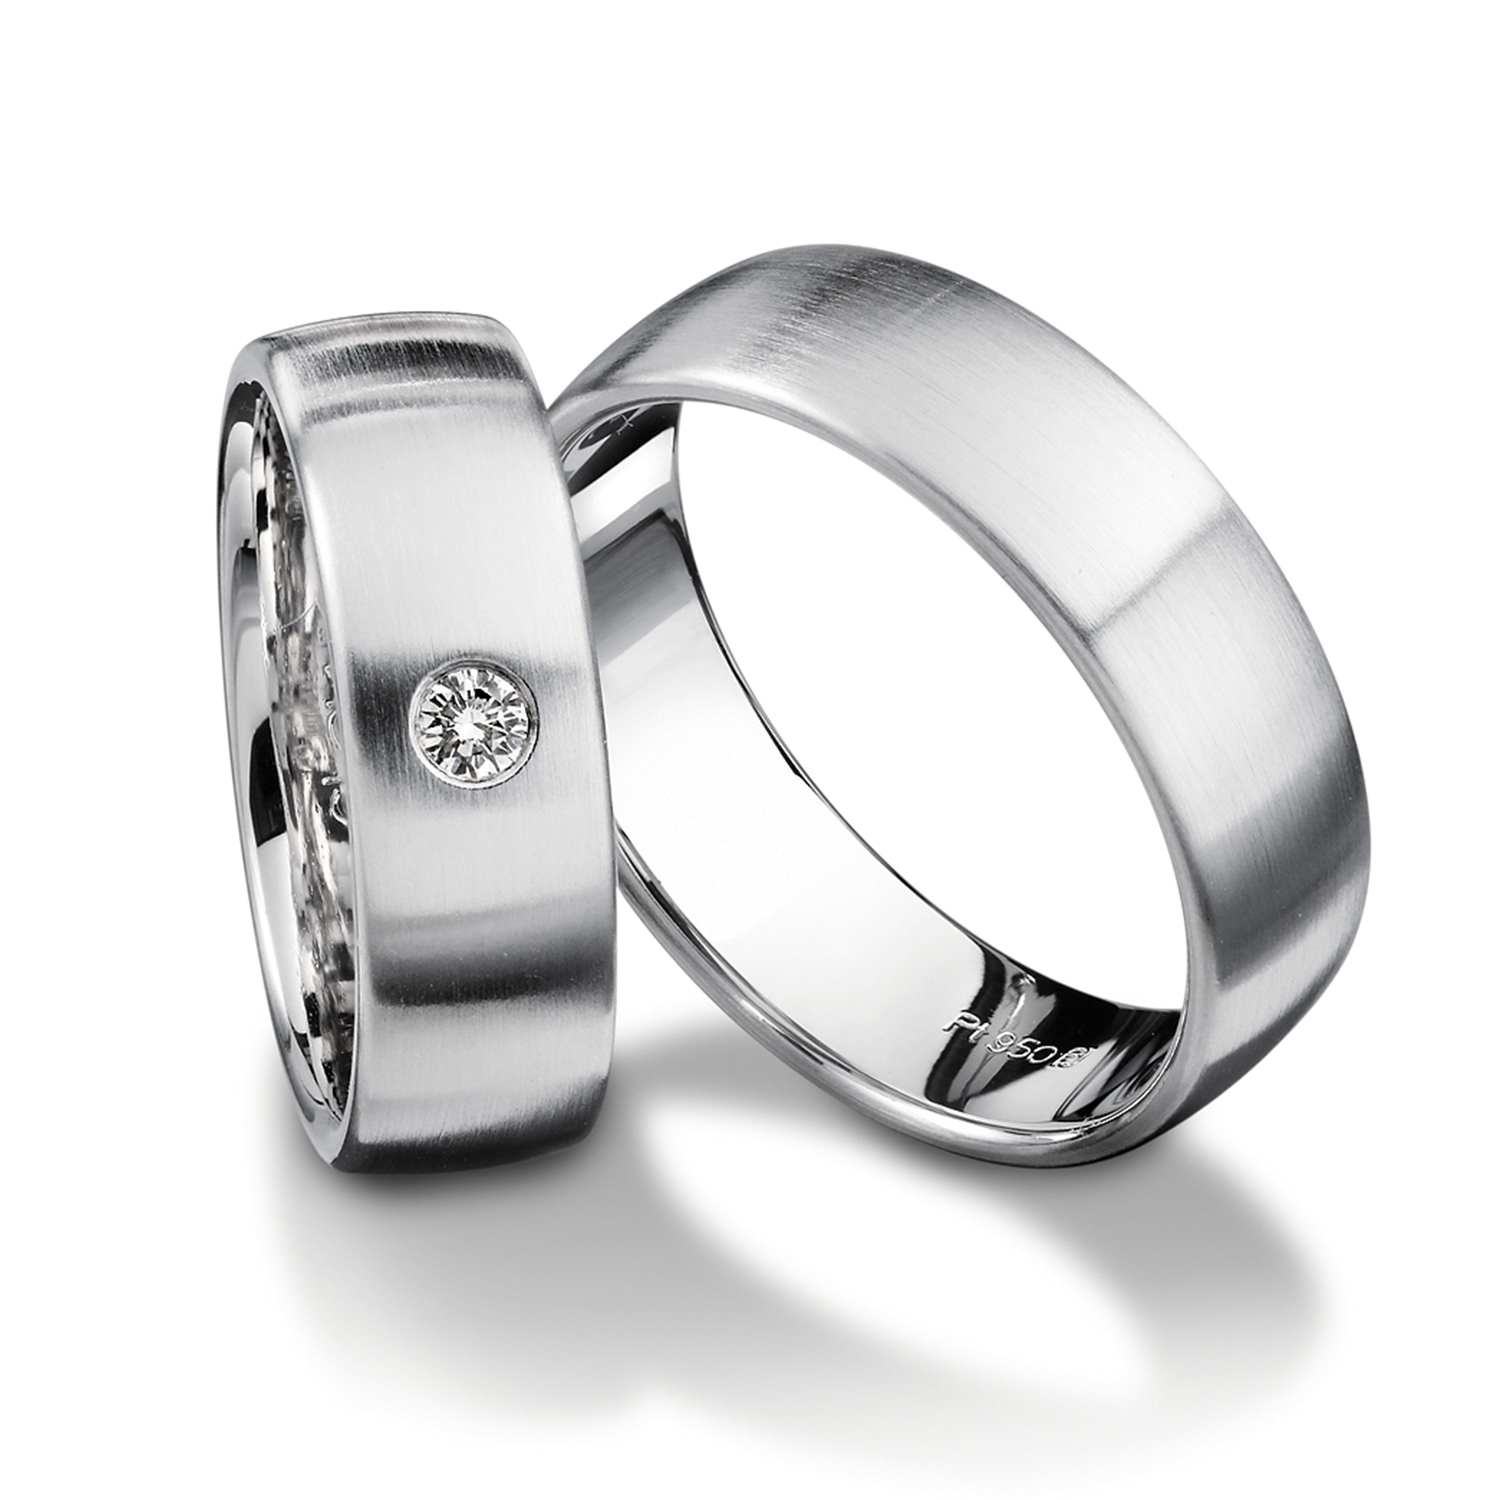 wedding bands, wedding rings, in gold, platinum, palladium, bicolor, with diamonds, Ringdividuell, individual